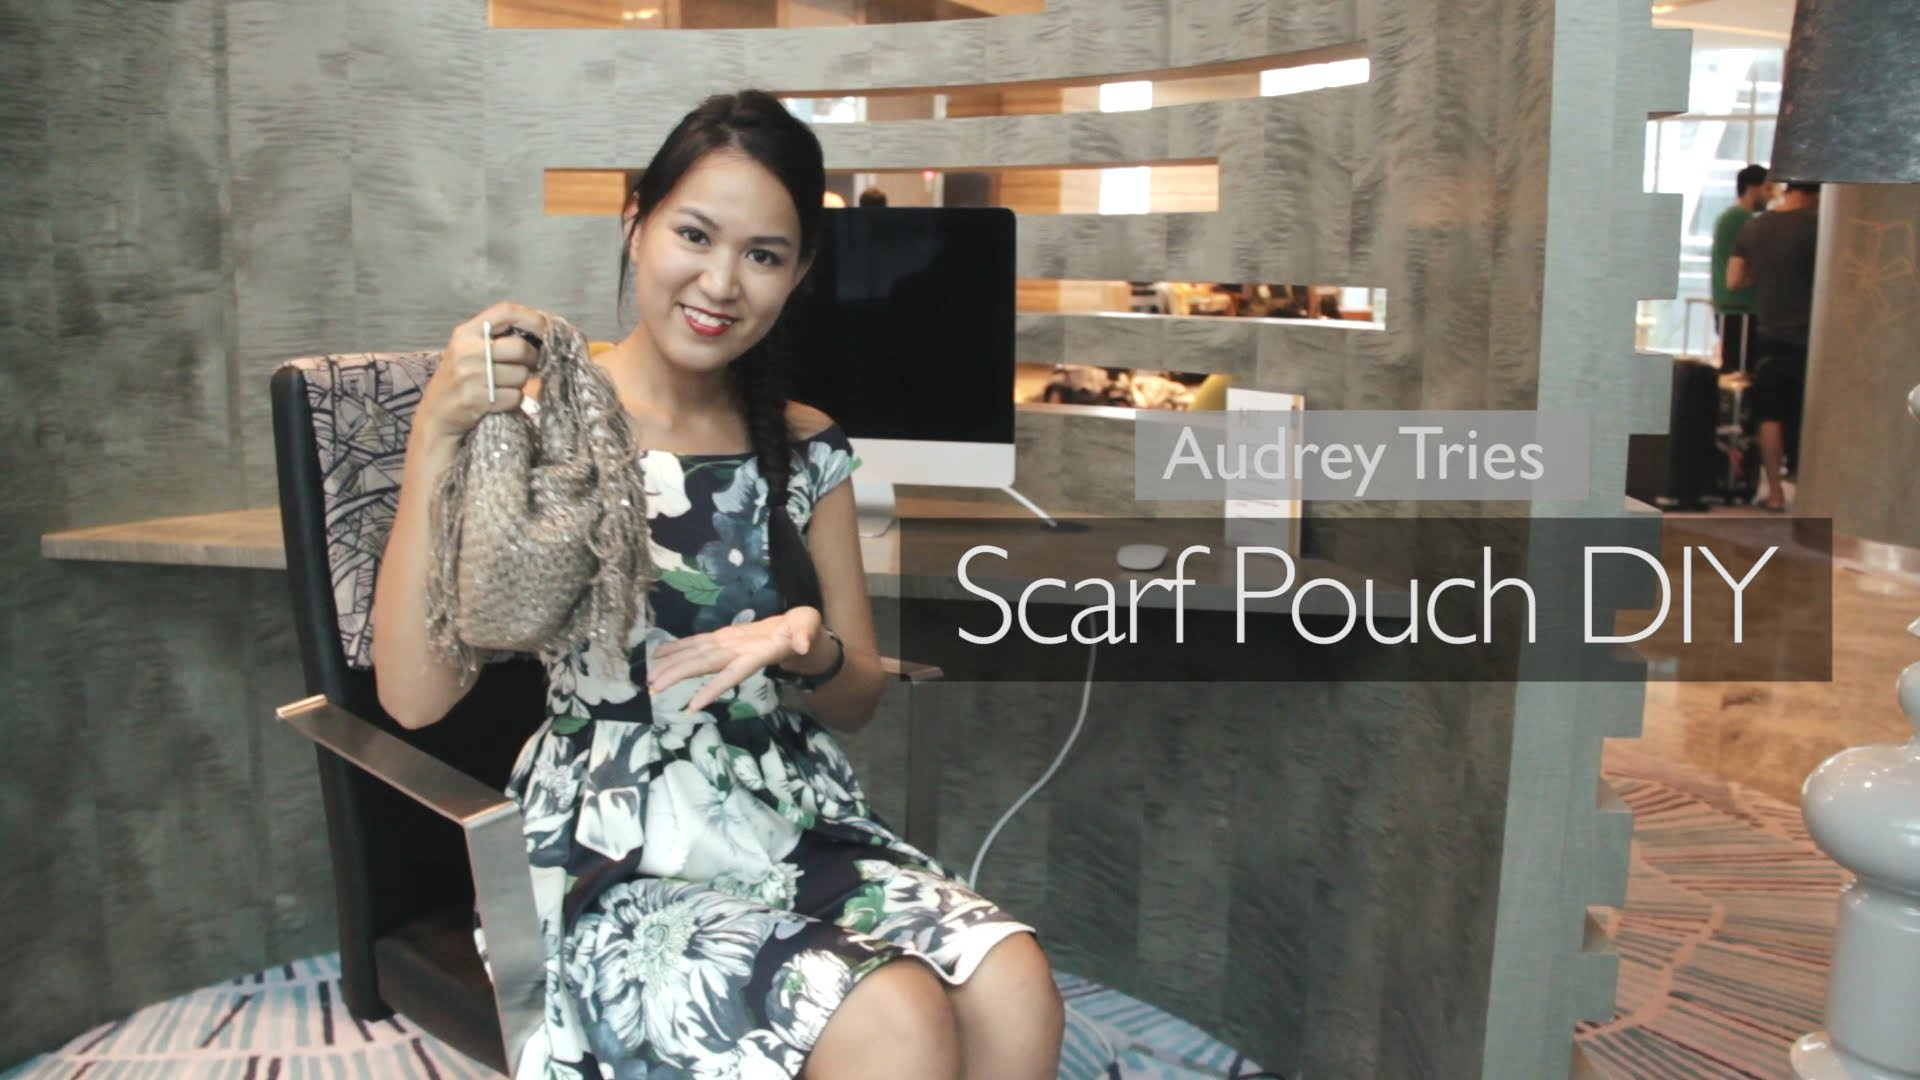 Audrey Tries DIY Episode 1: The Scarf Pouch (Made at Maker Bootcamp!)